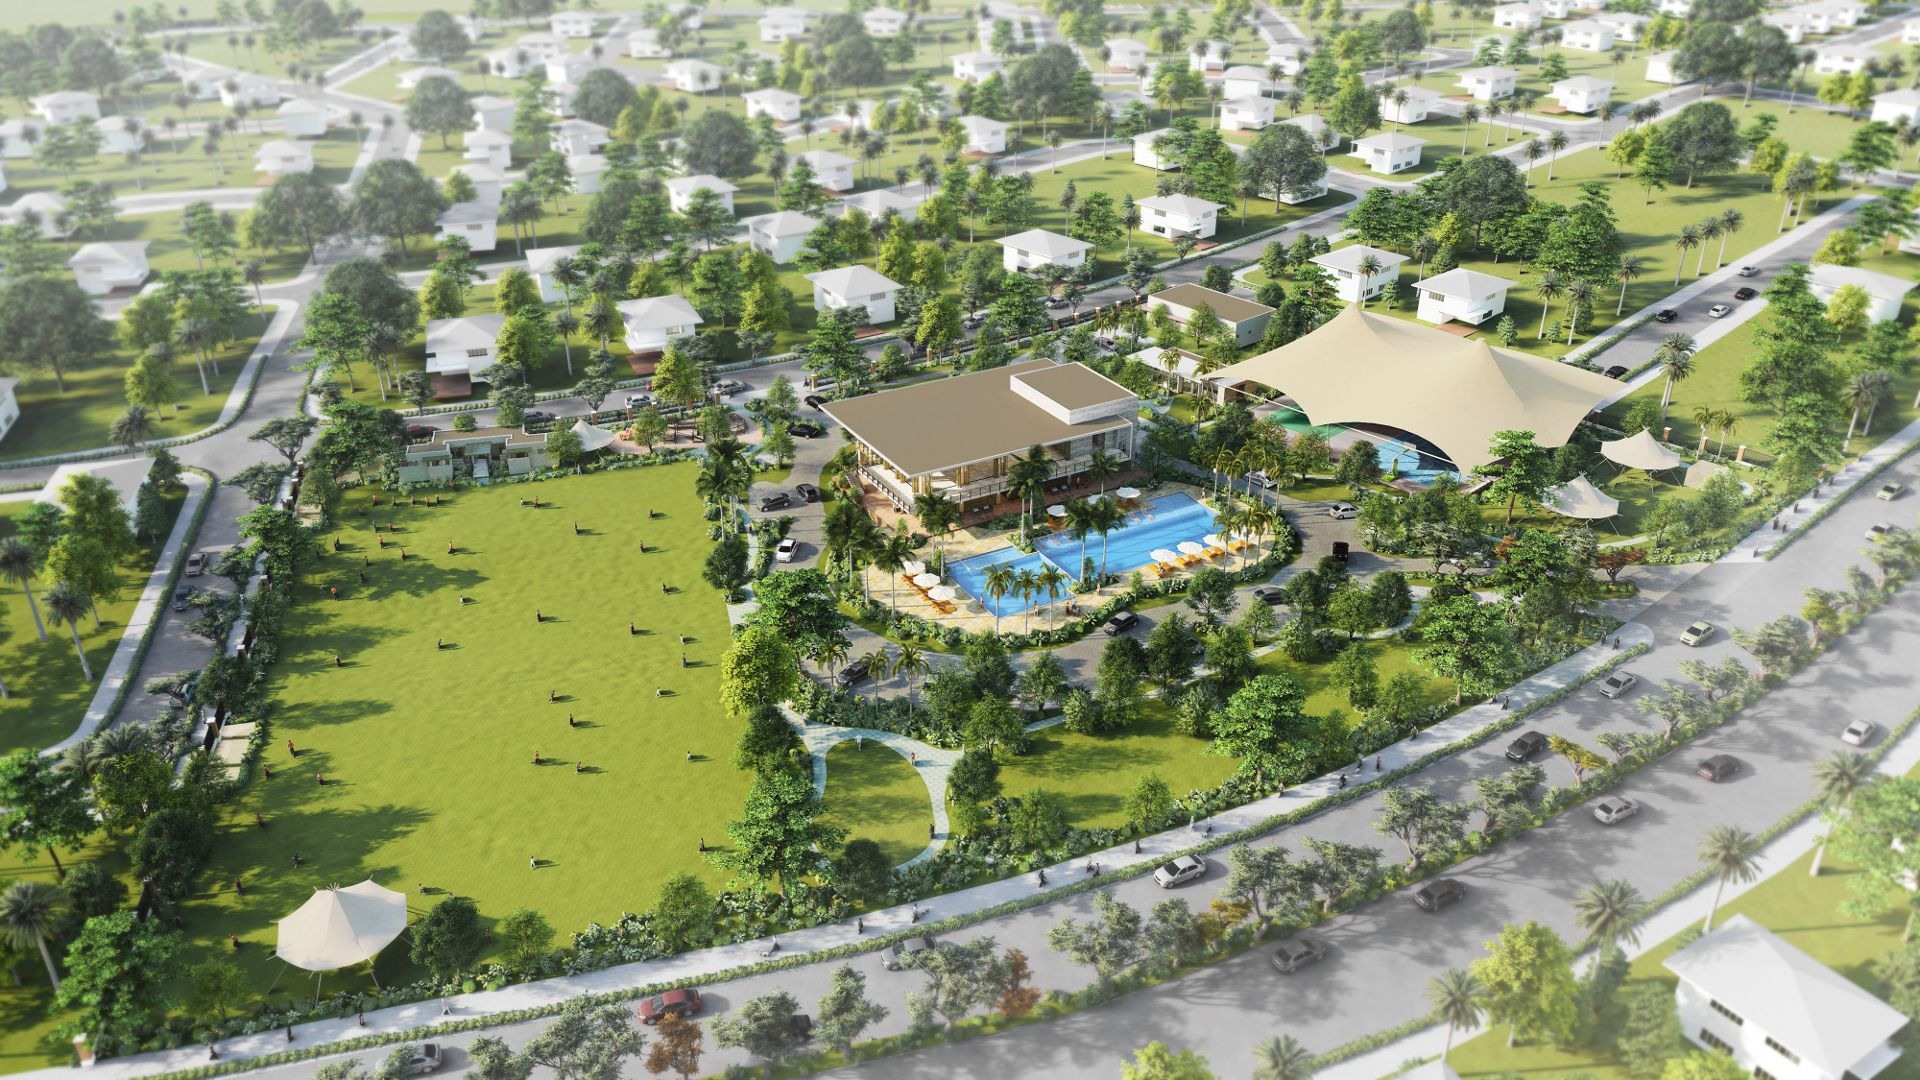 Rockwell South at Carmelray - Central Amenity Aerial Shot